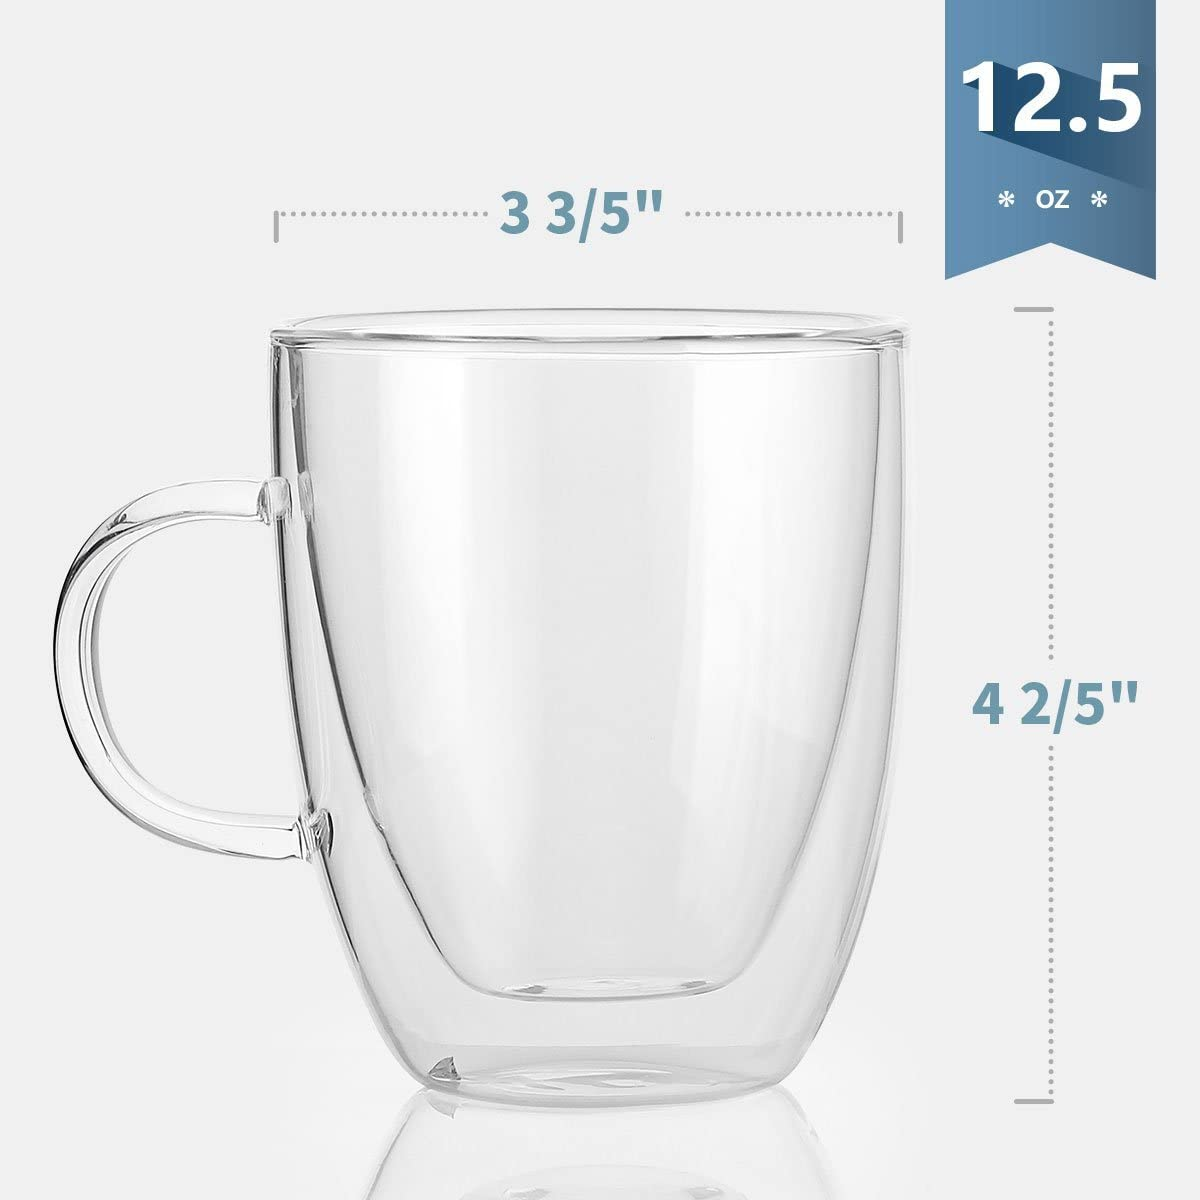 Sweese 413 101 Glass Coffee Mugs 12 5 Oz Double Walled Insulated Mug Set With Handle Perfect For Latte Americano Cappuccinos Tea Bag Beverage Set Of 2 Coffee Cups Mugs